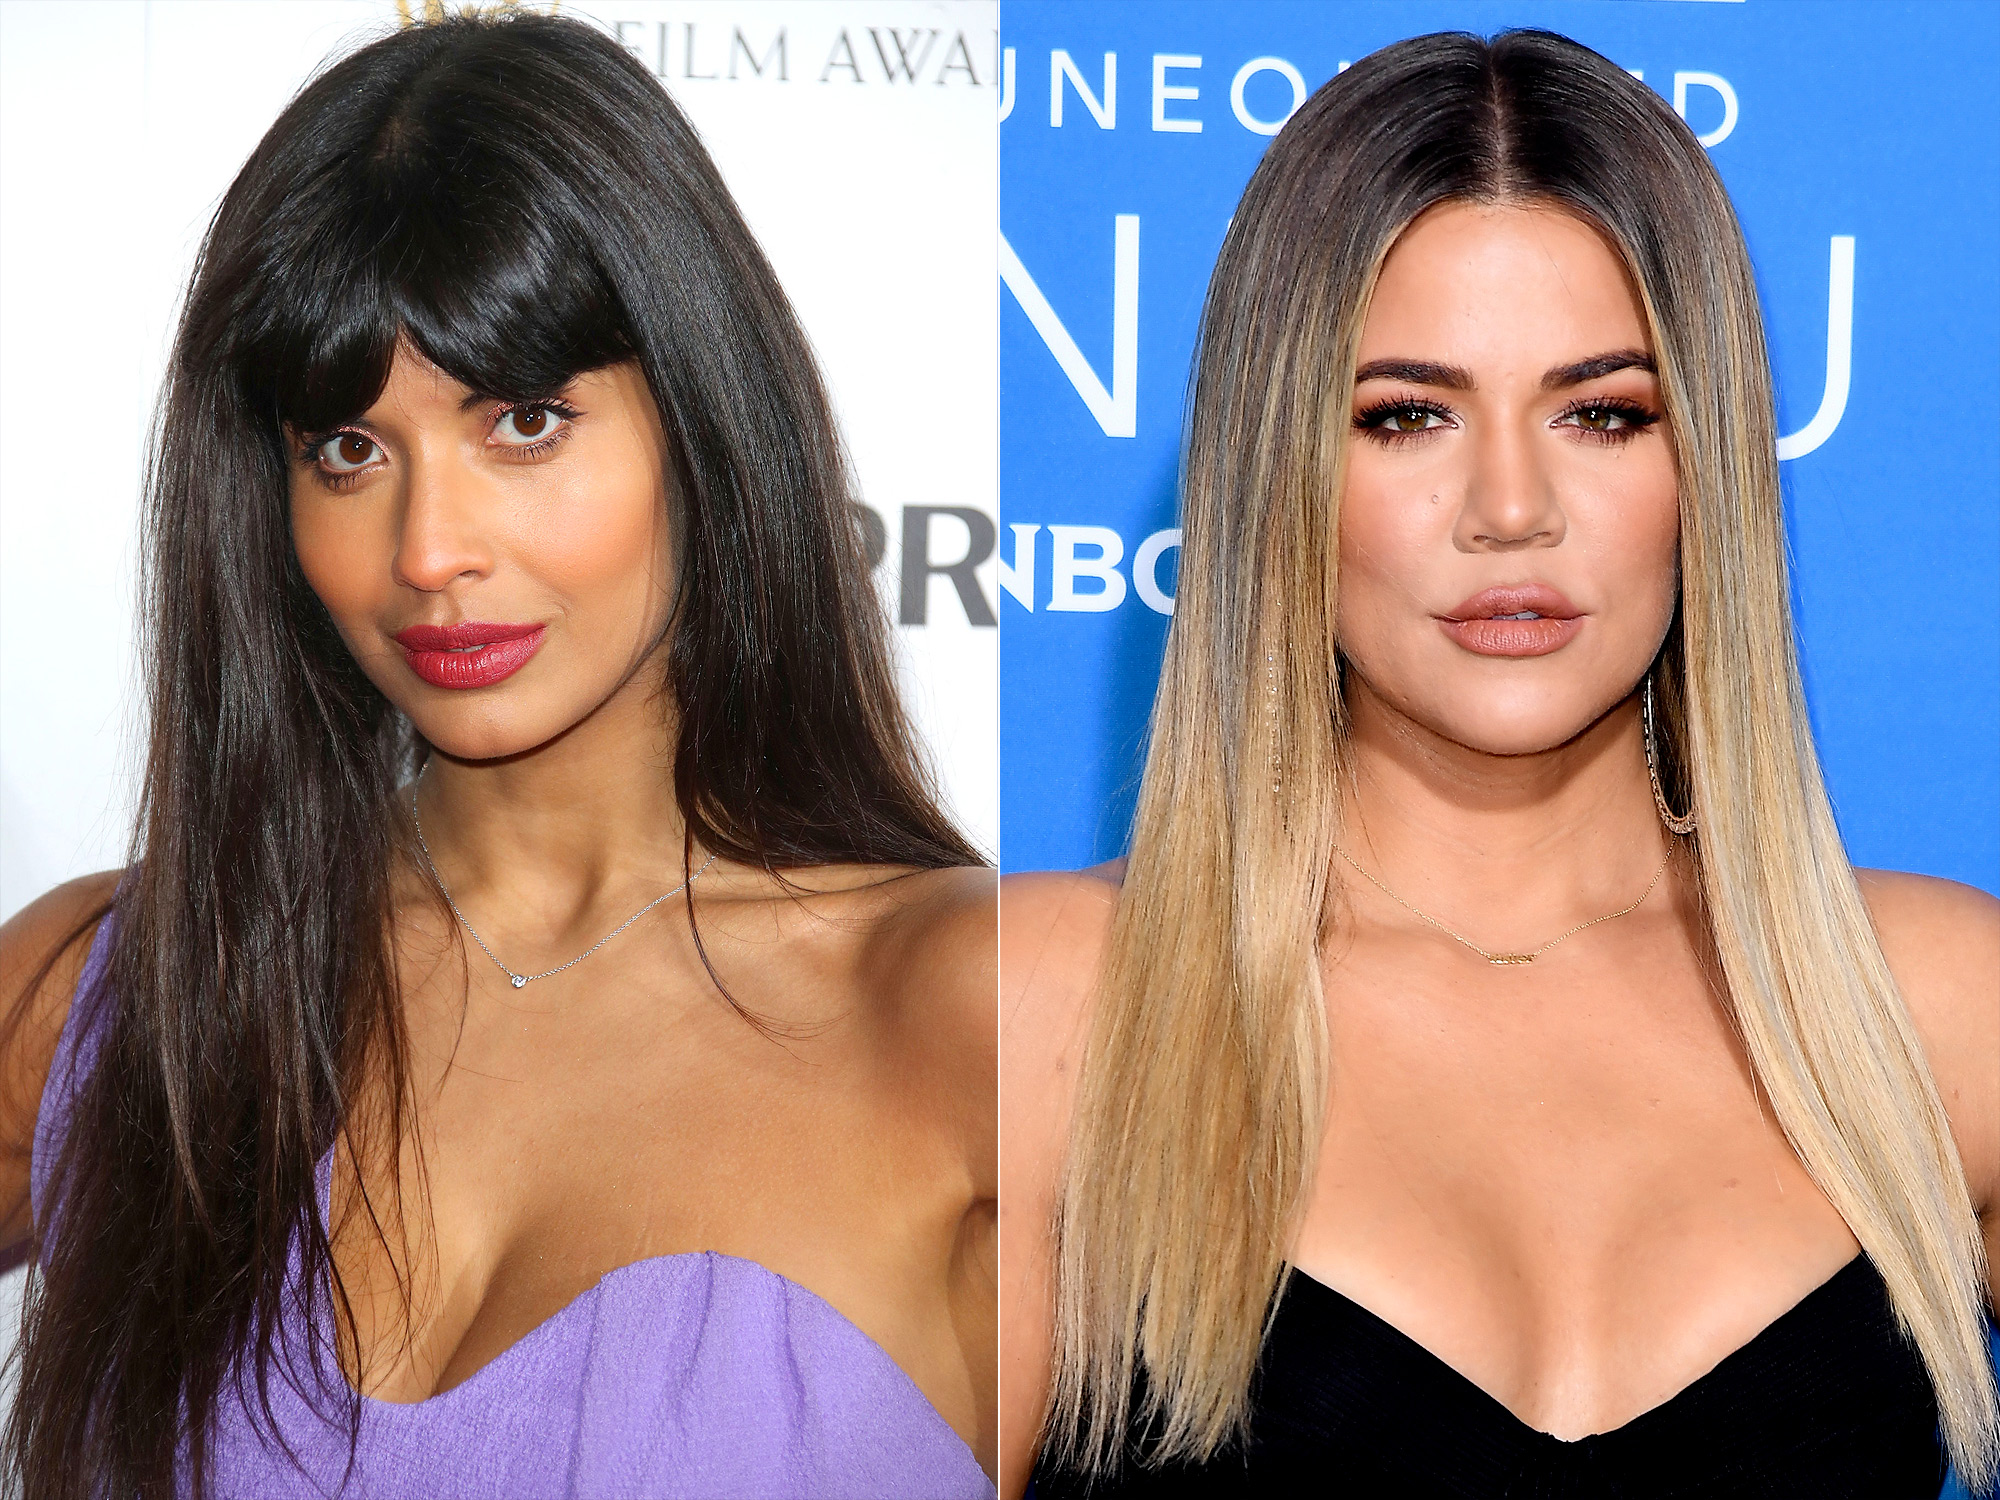 """jameela-jamil-tells-khloe-kardashian-to-check-your-moral-compass-after-defending-her-weightloss-tea-advertising"""